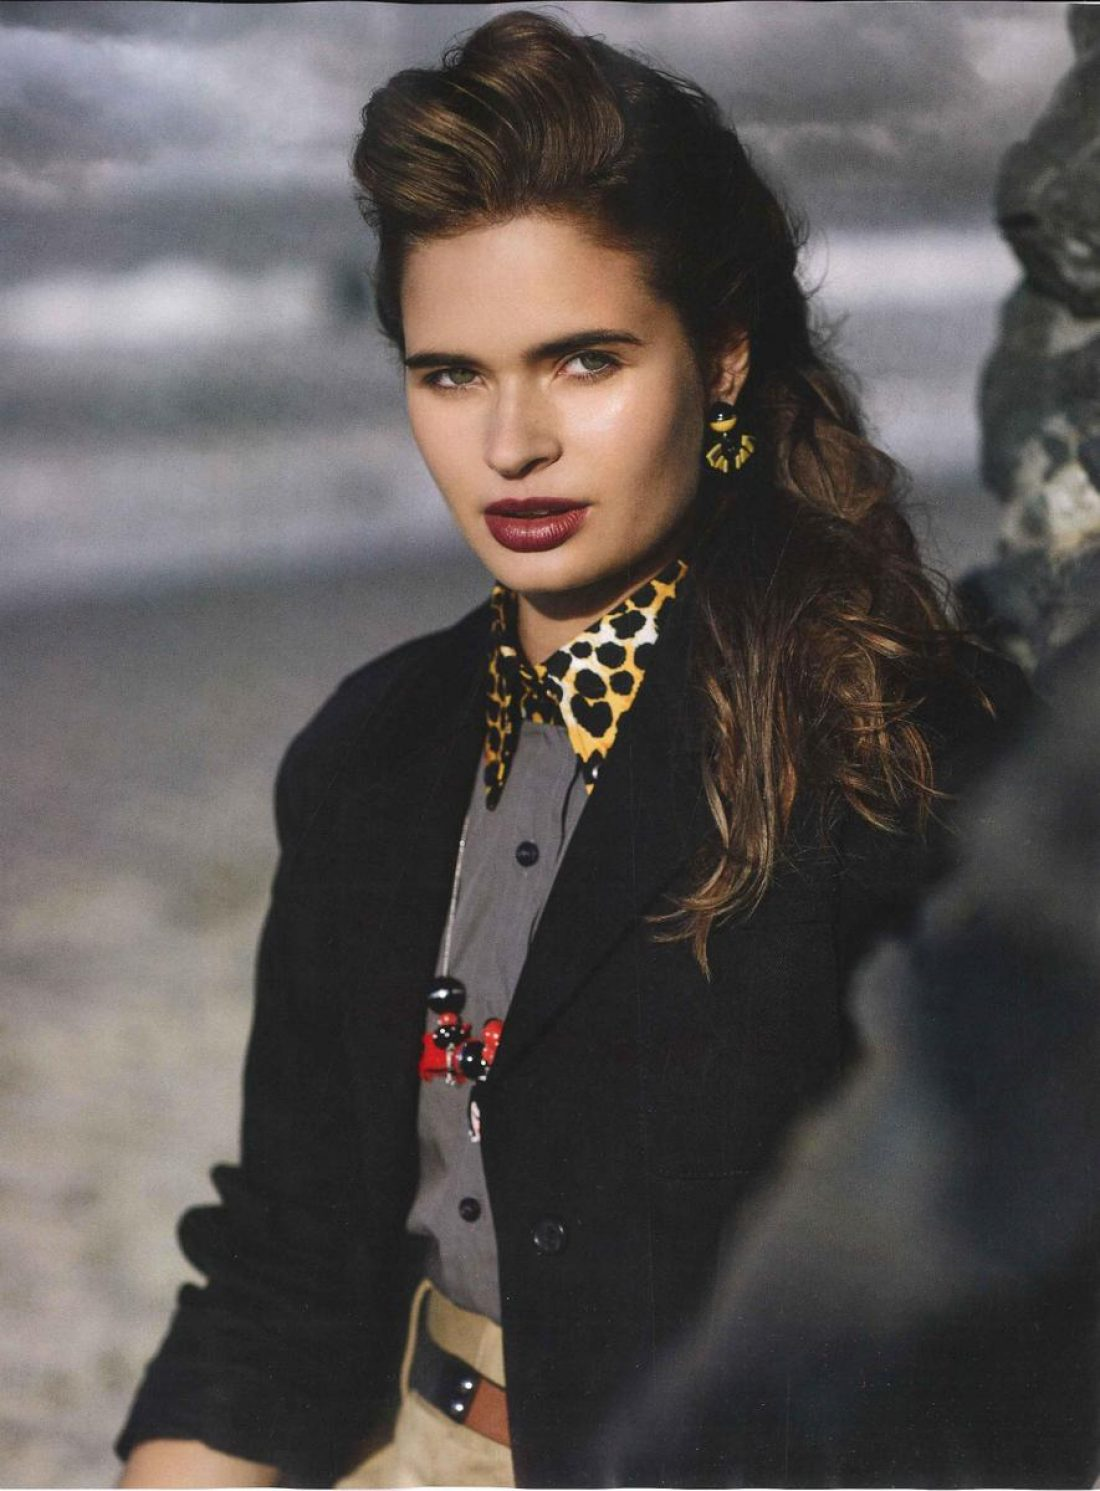 Vienna photographed by Steve Tilley for Mindfood Style Magazine